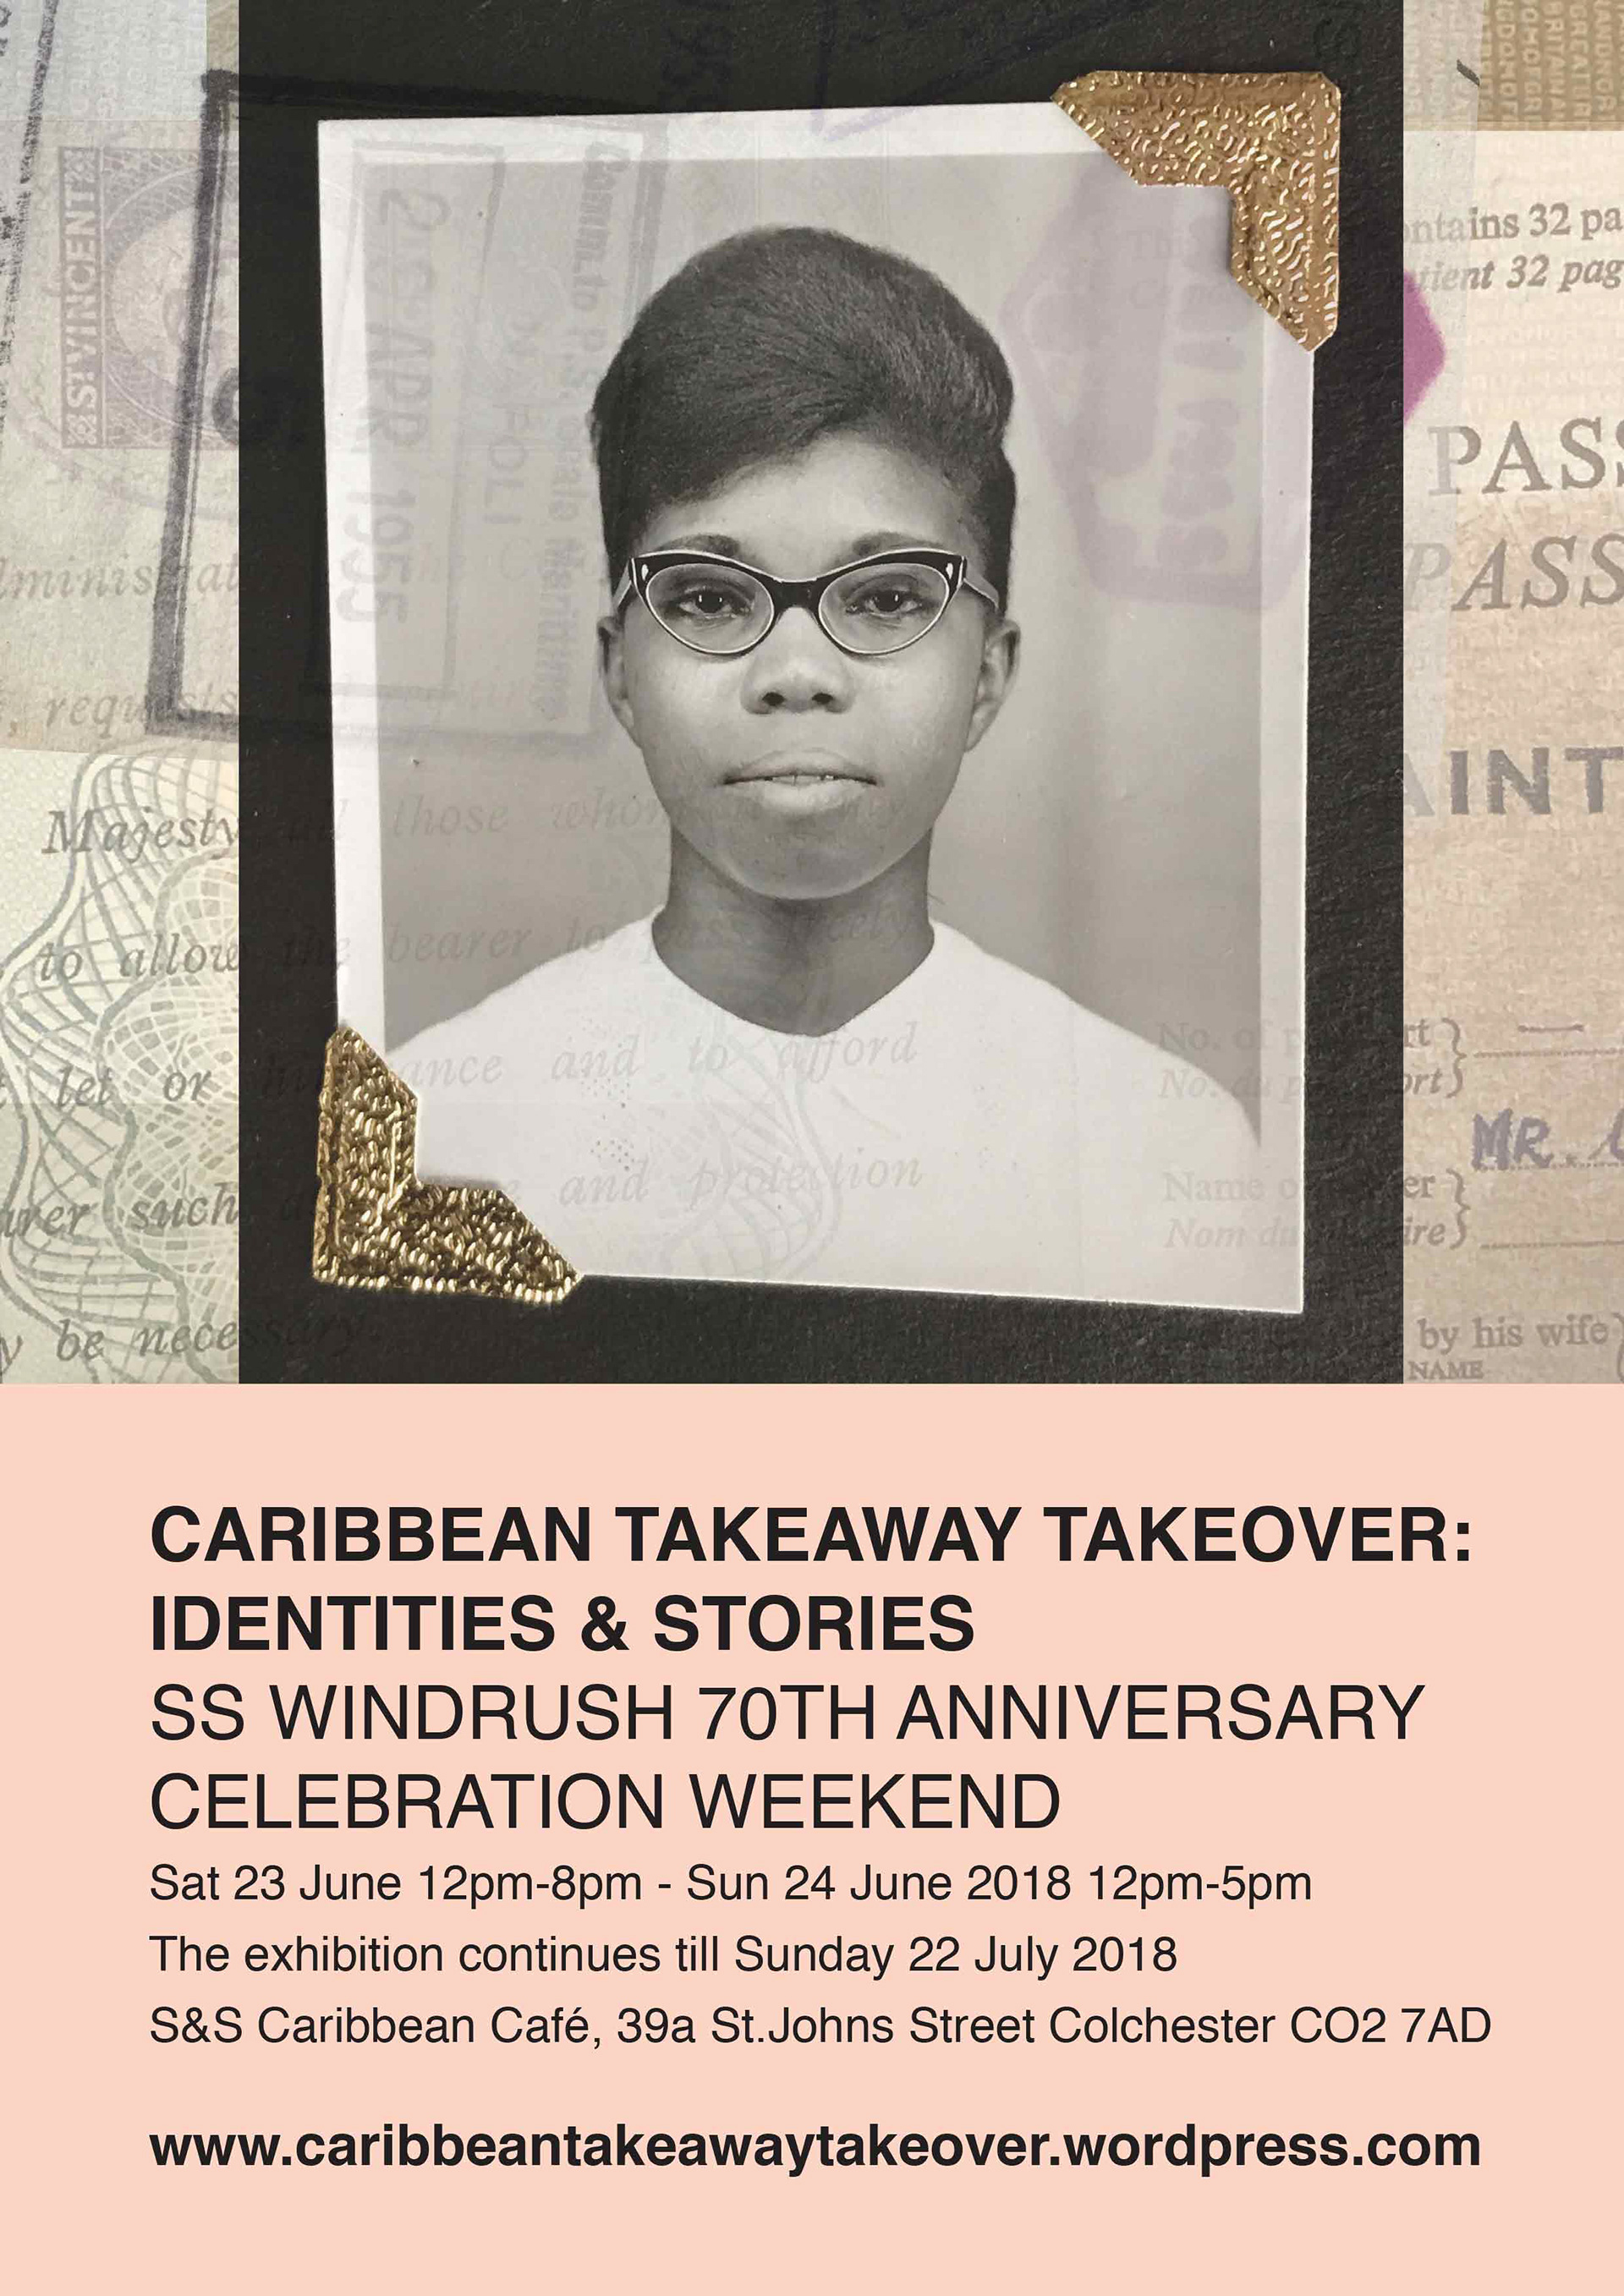 Caribbean Takeaway Takeover Poster design 01 produced by ESP